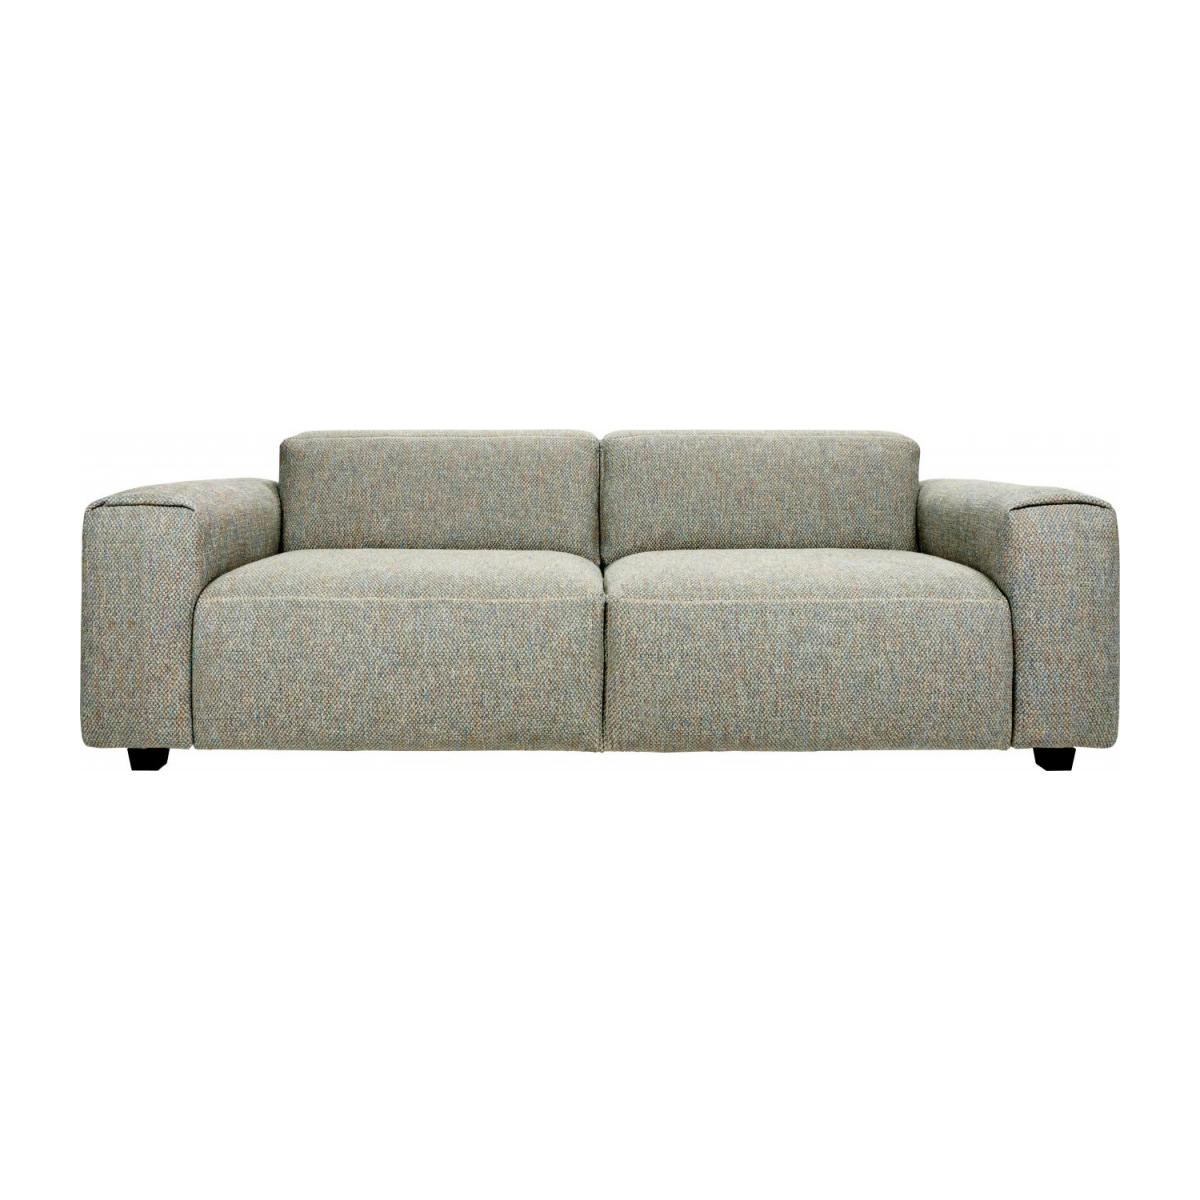 3 seater sofa in Bellagio fabric, organic green n°4